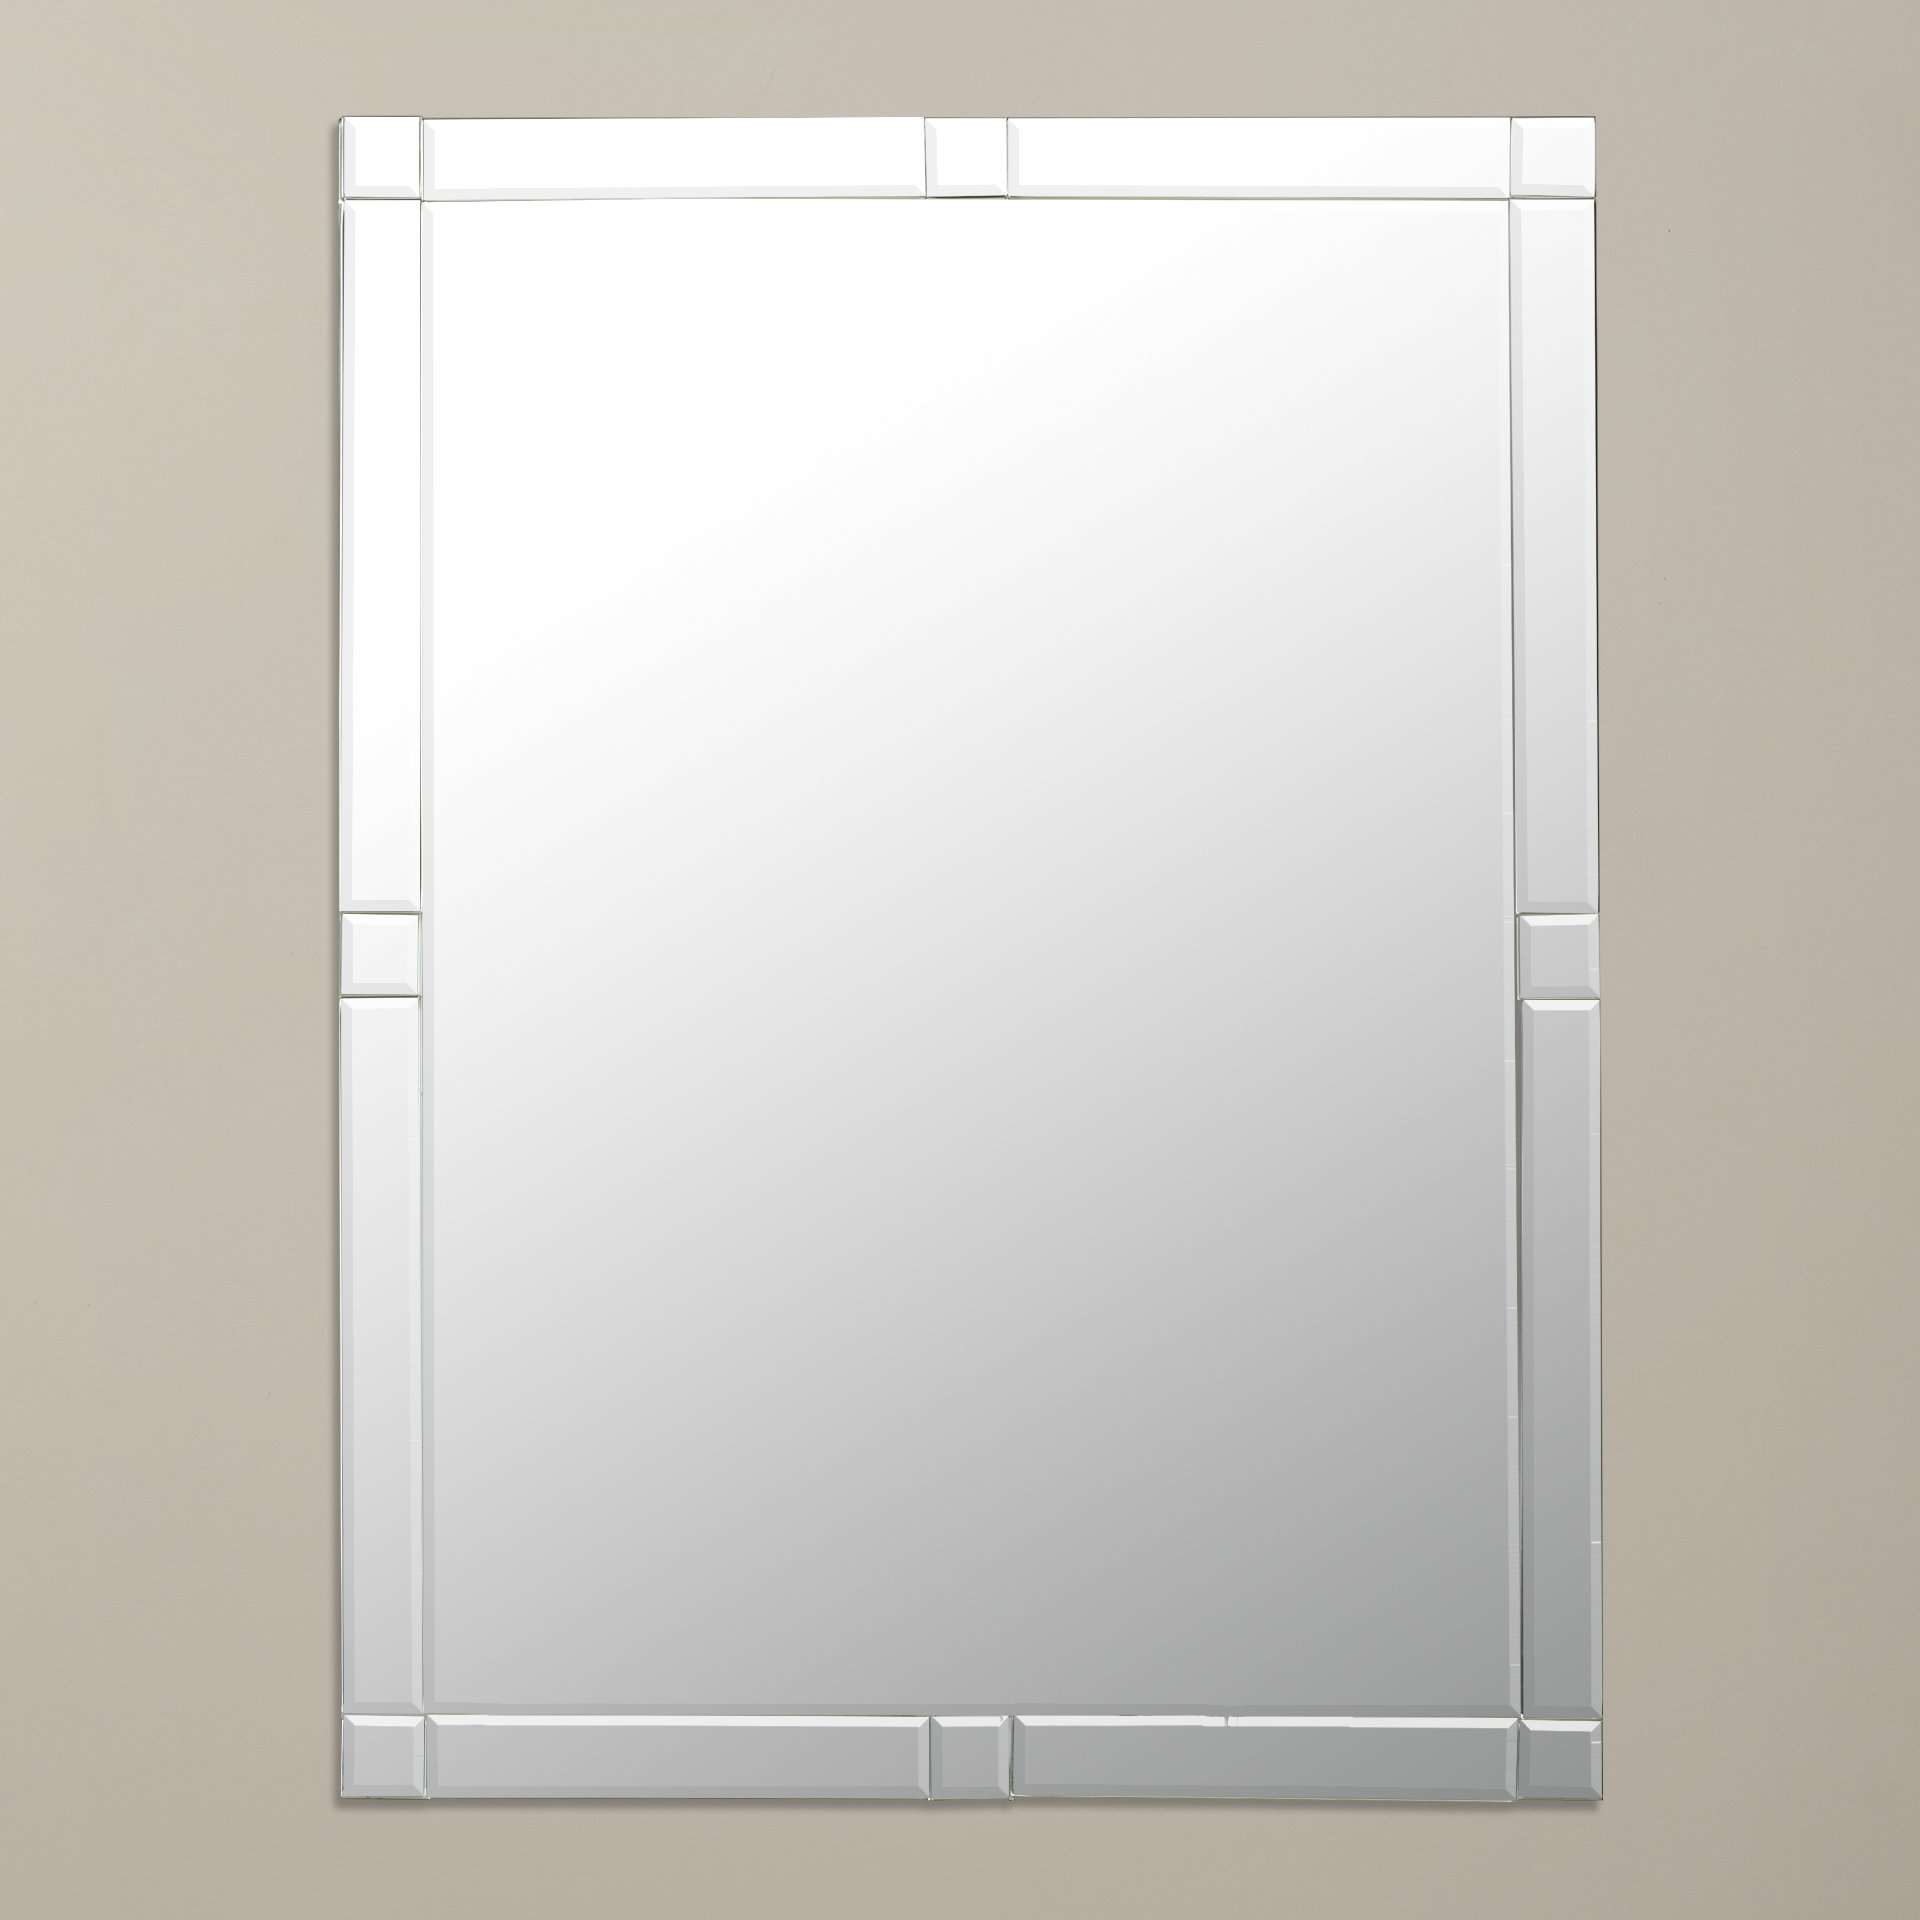 Latest Frameless Wall Mirror Pertaining To Logan Frameless Wall Mirrors (View 4 of 20)